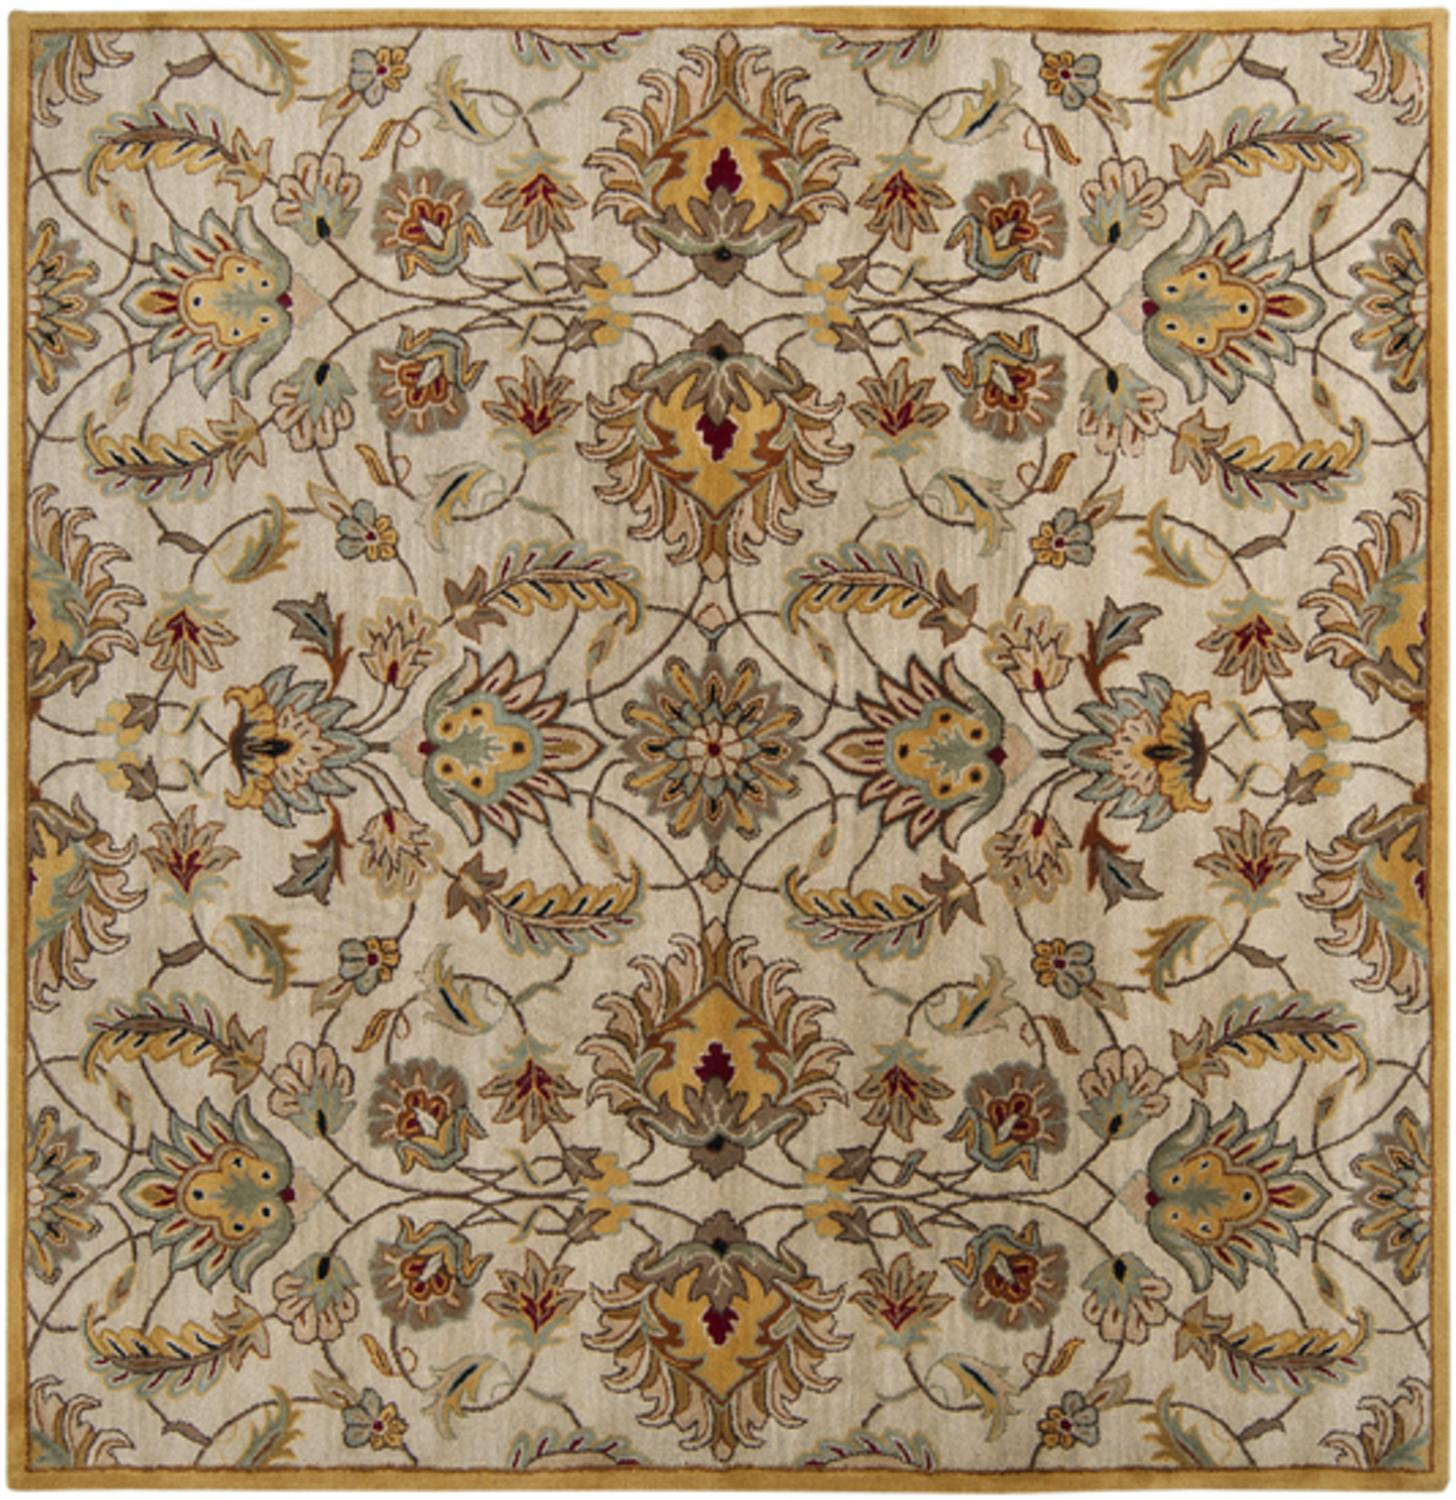 4' x 4' Alexandria Caramel Tan and Silver Gray Hand Tufted Wool Area Throw Rug